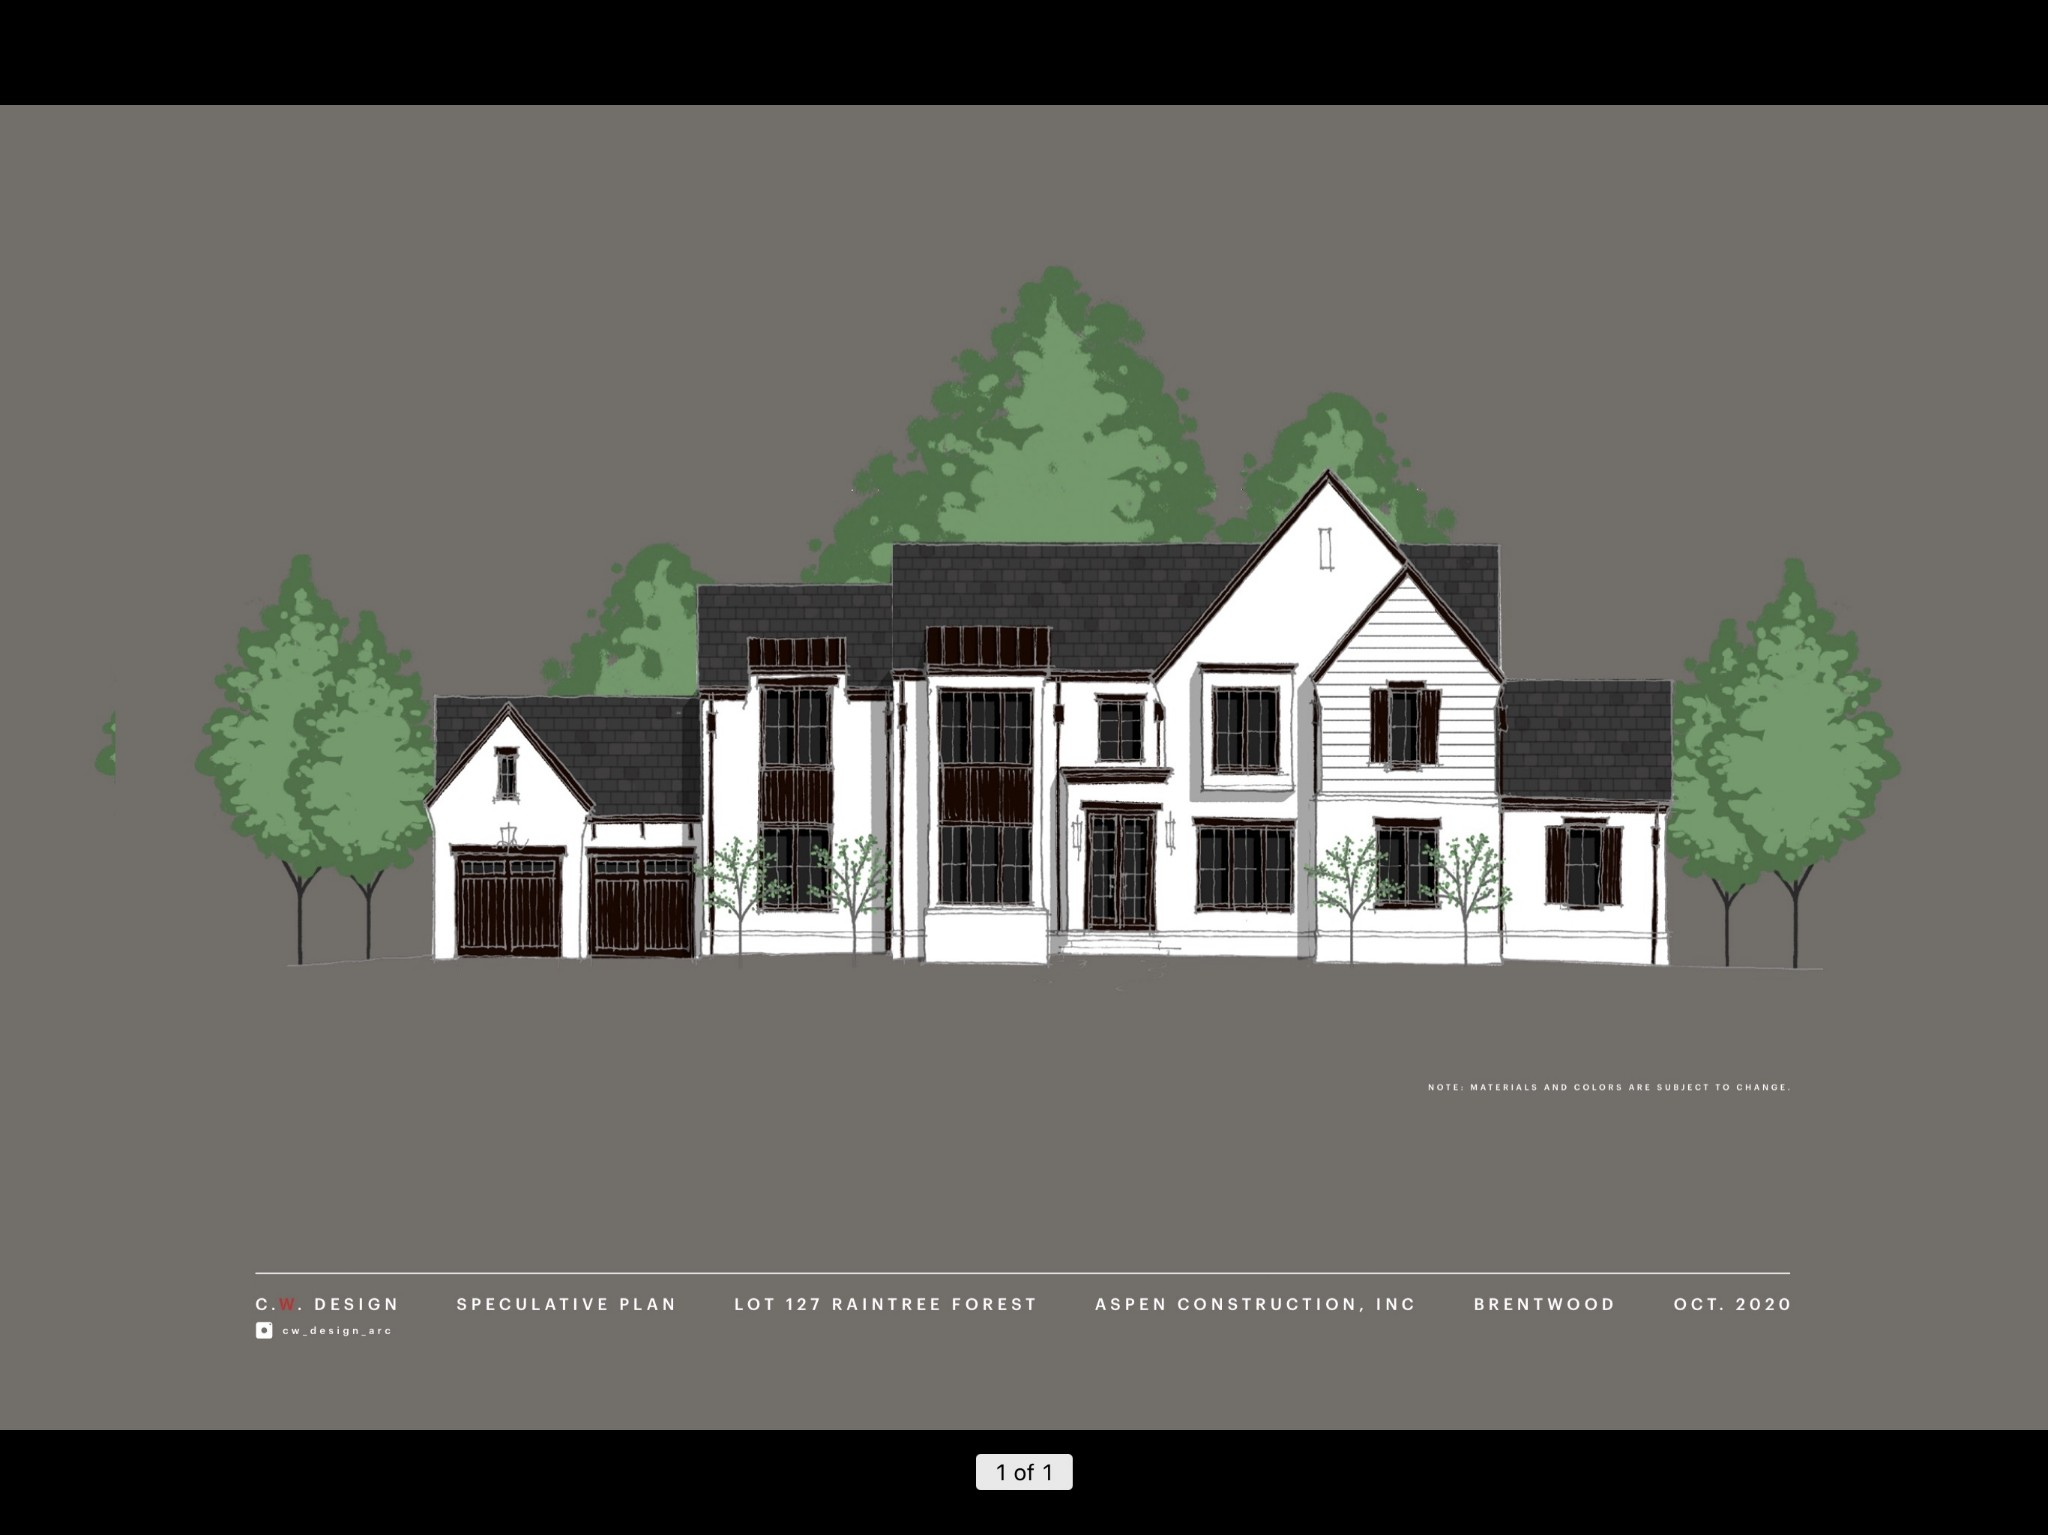 Quality from Award-Winning Aspen Construction! Home Backs to Mature Trees, Full Finished Bsmt (w/ 2nd Bonus Room w/Wet Bar & Covered Porch), Shaft for Future Elevator, Open Living Areas, Gourmet Kitchen, 2 BD's on Main, Family Room w/FP, Master Ste w/Dual Walk-in Closets, Every BD has a Private BA & Walk-In Closet, Large Bonus Room Up, Covered Deck w/FP